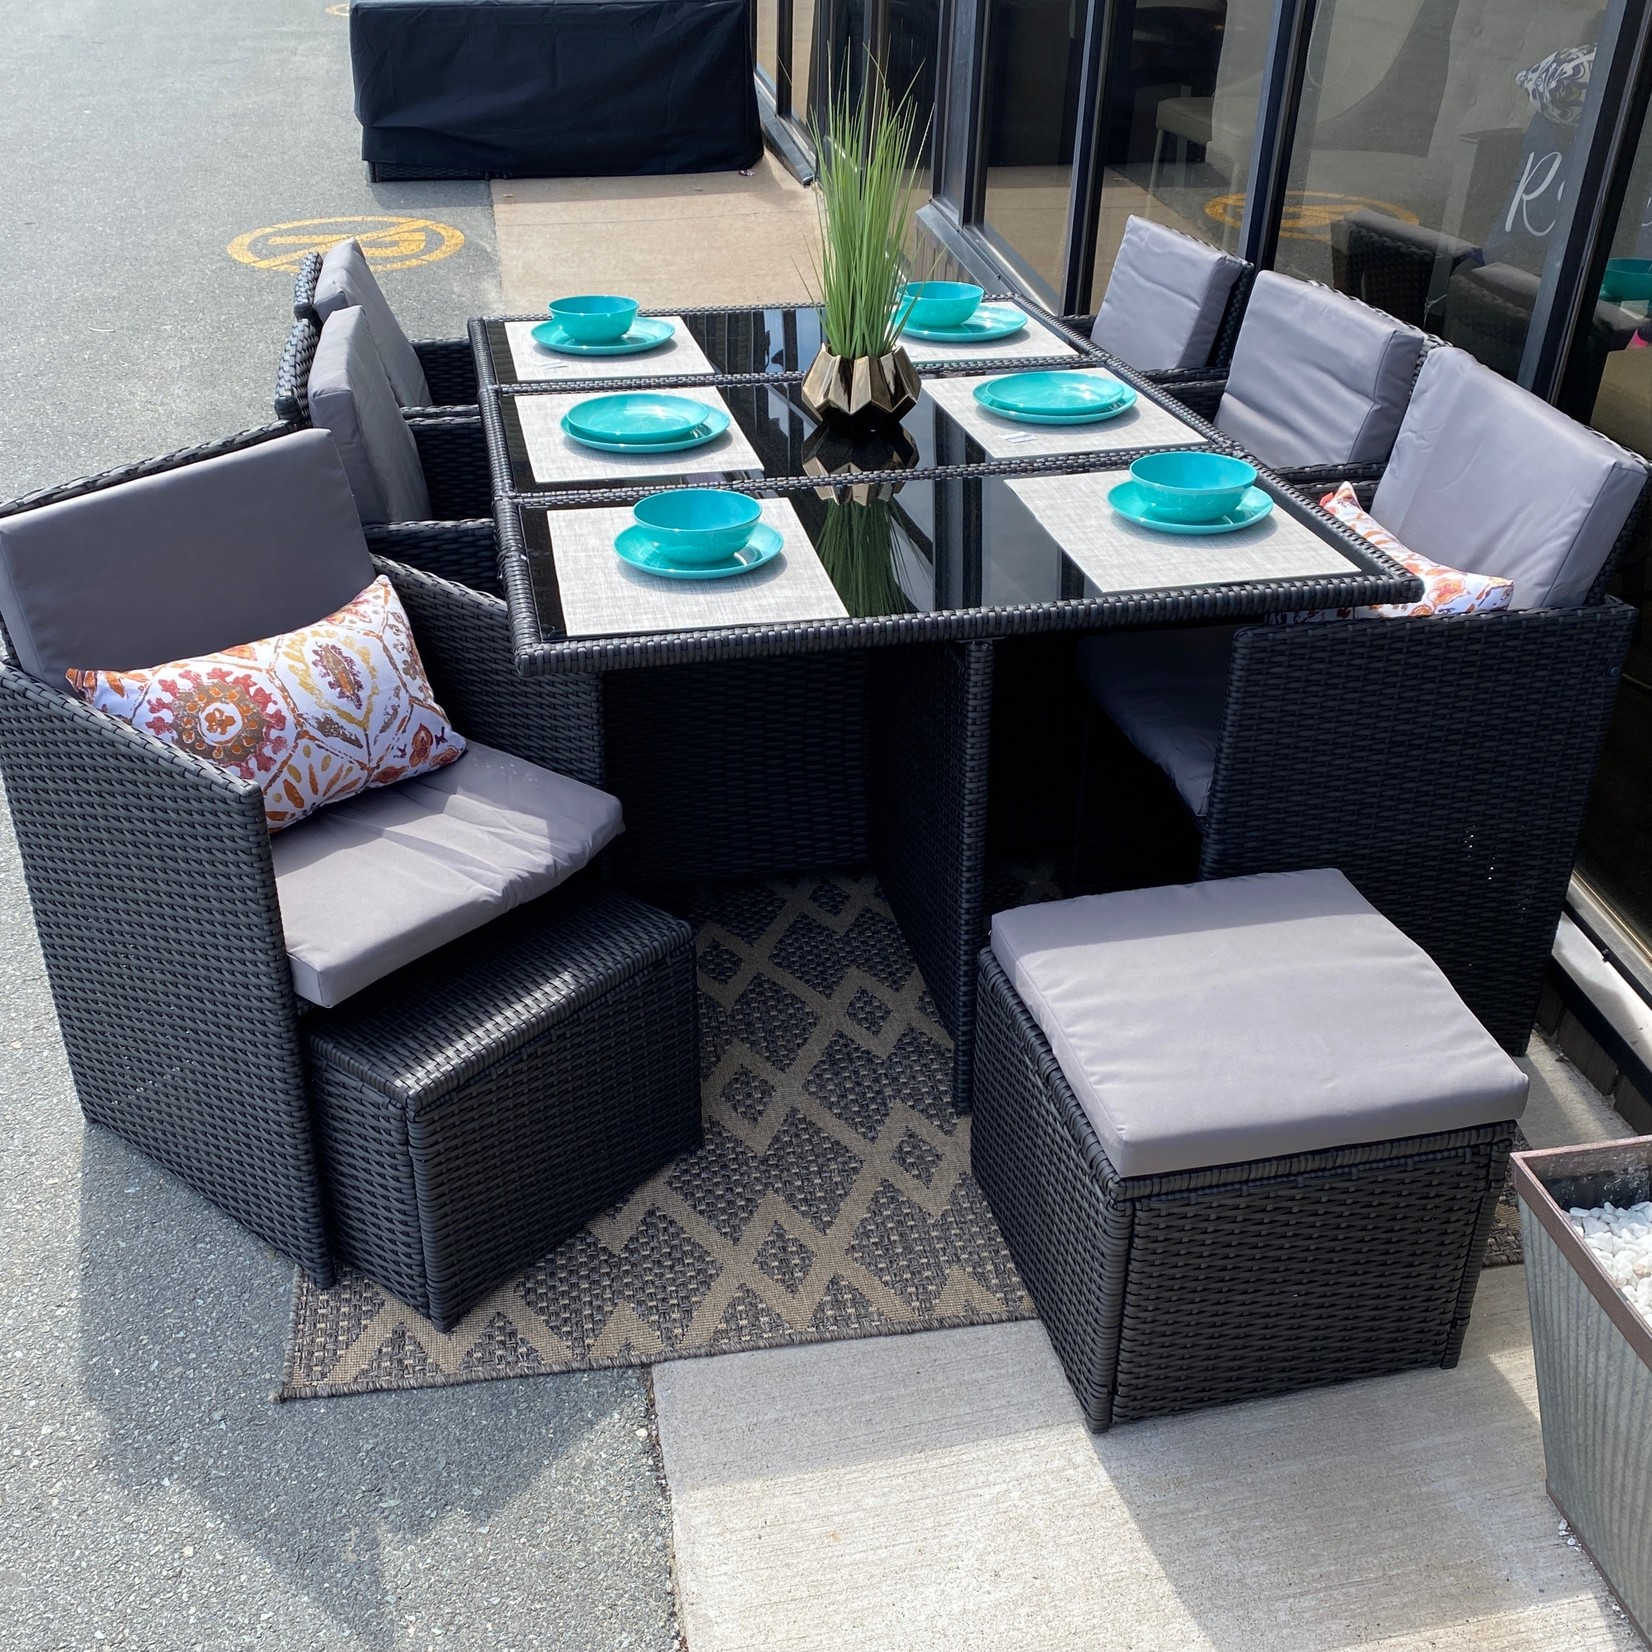 11-Piece Cube Dining Set with Cover - Assembly Required